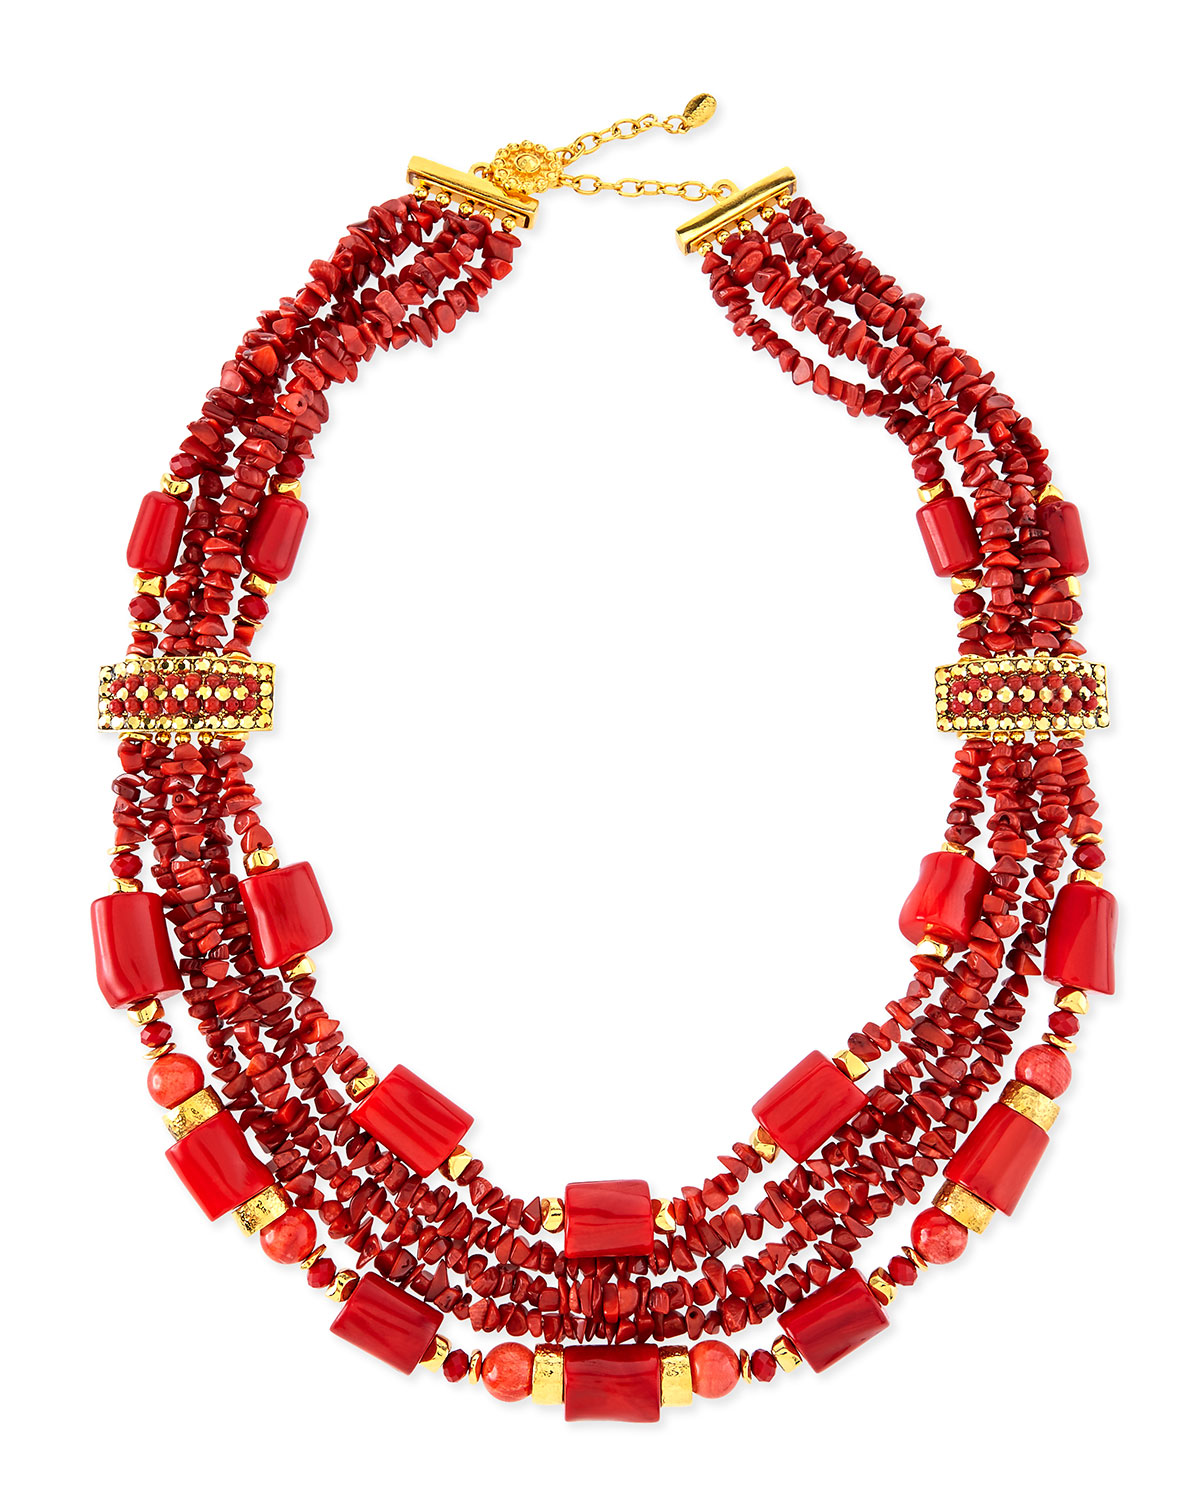 24K Gold Chunky Coral Necklace